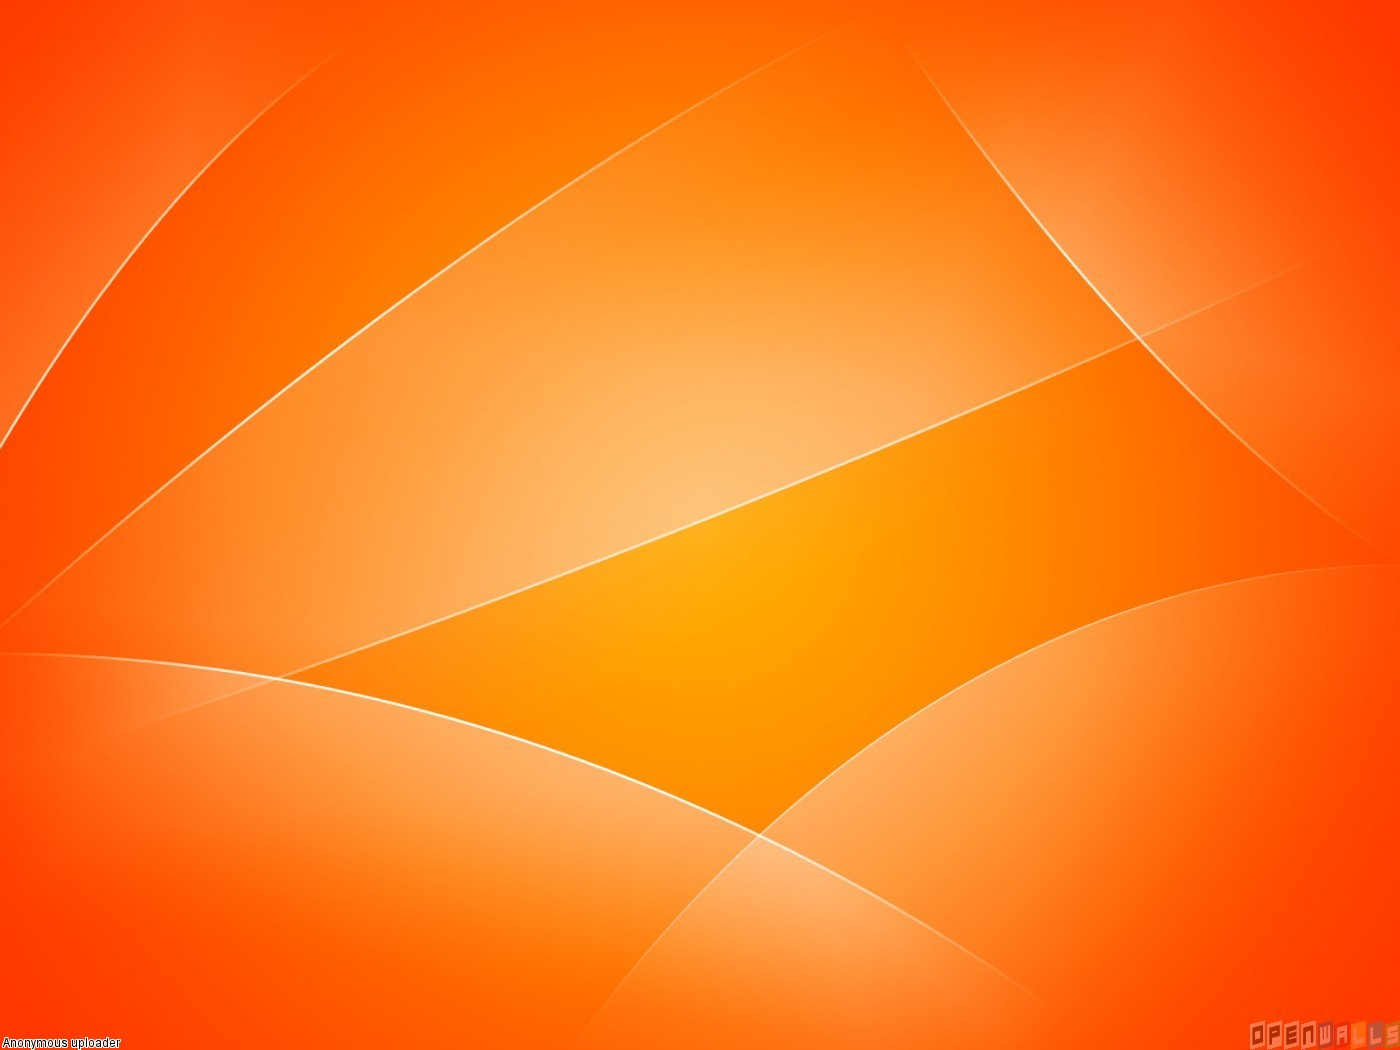 Orange background wallpaper 12889   Open Walls 1400x1050